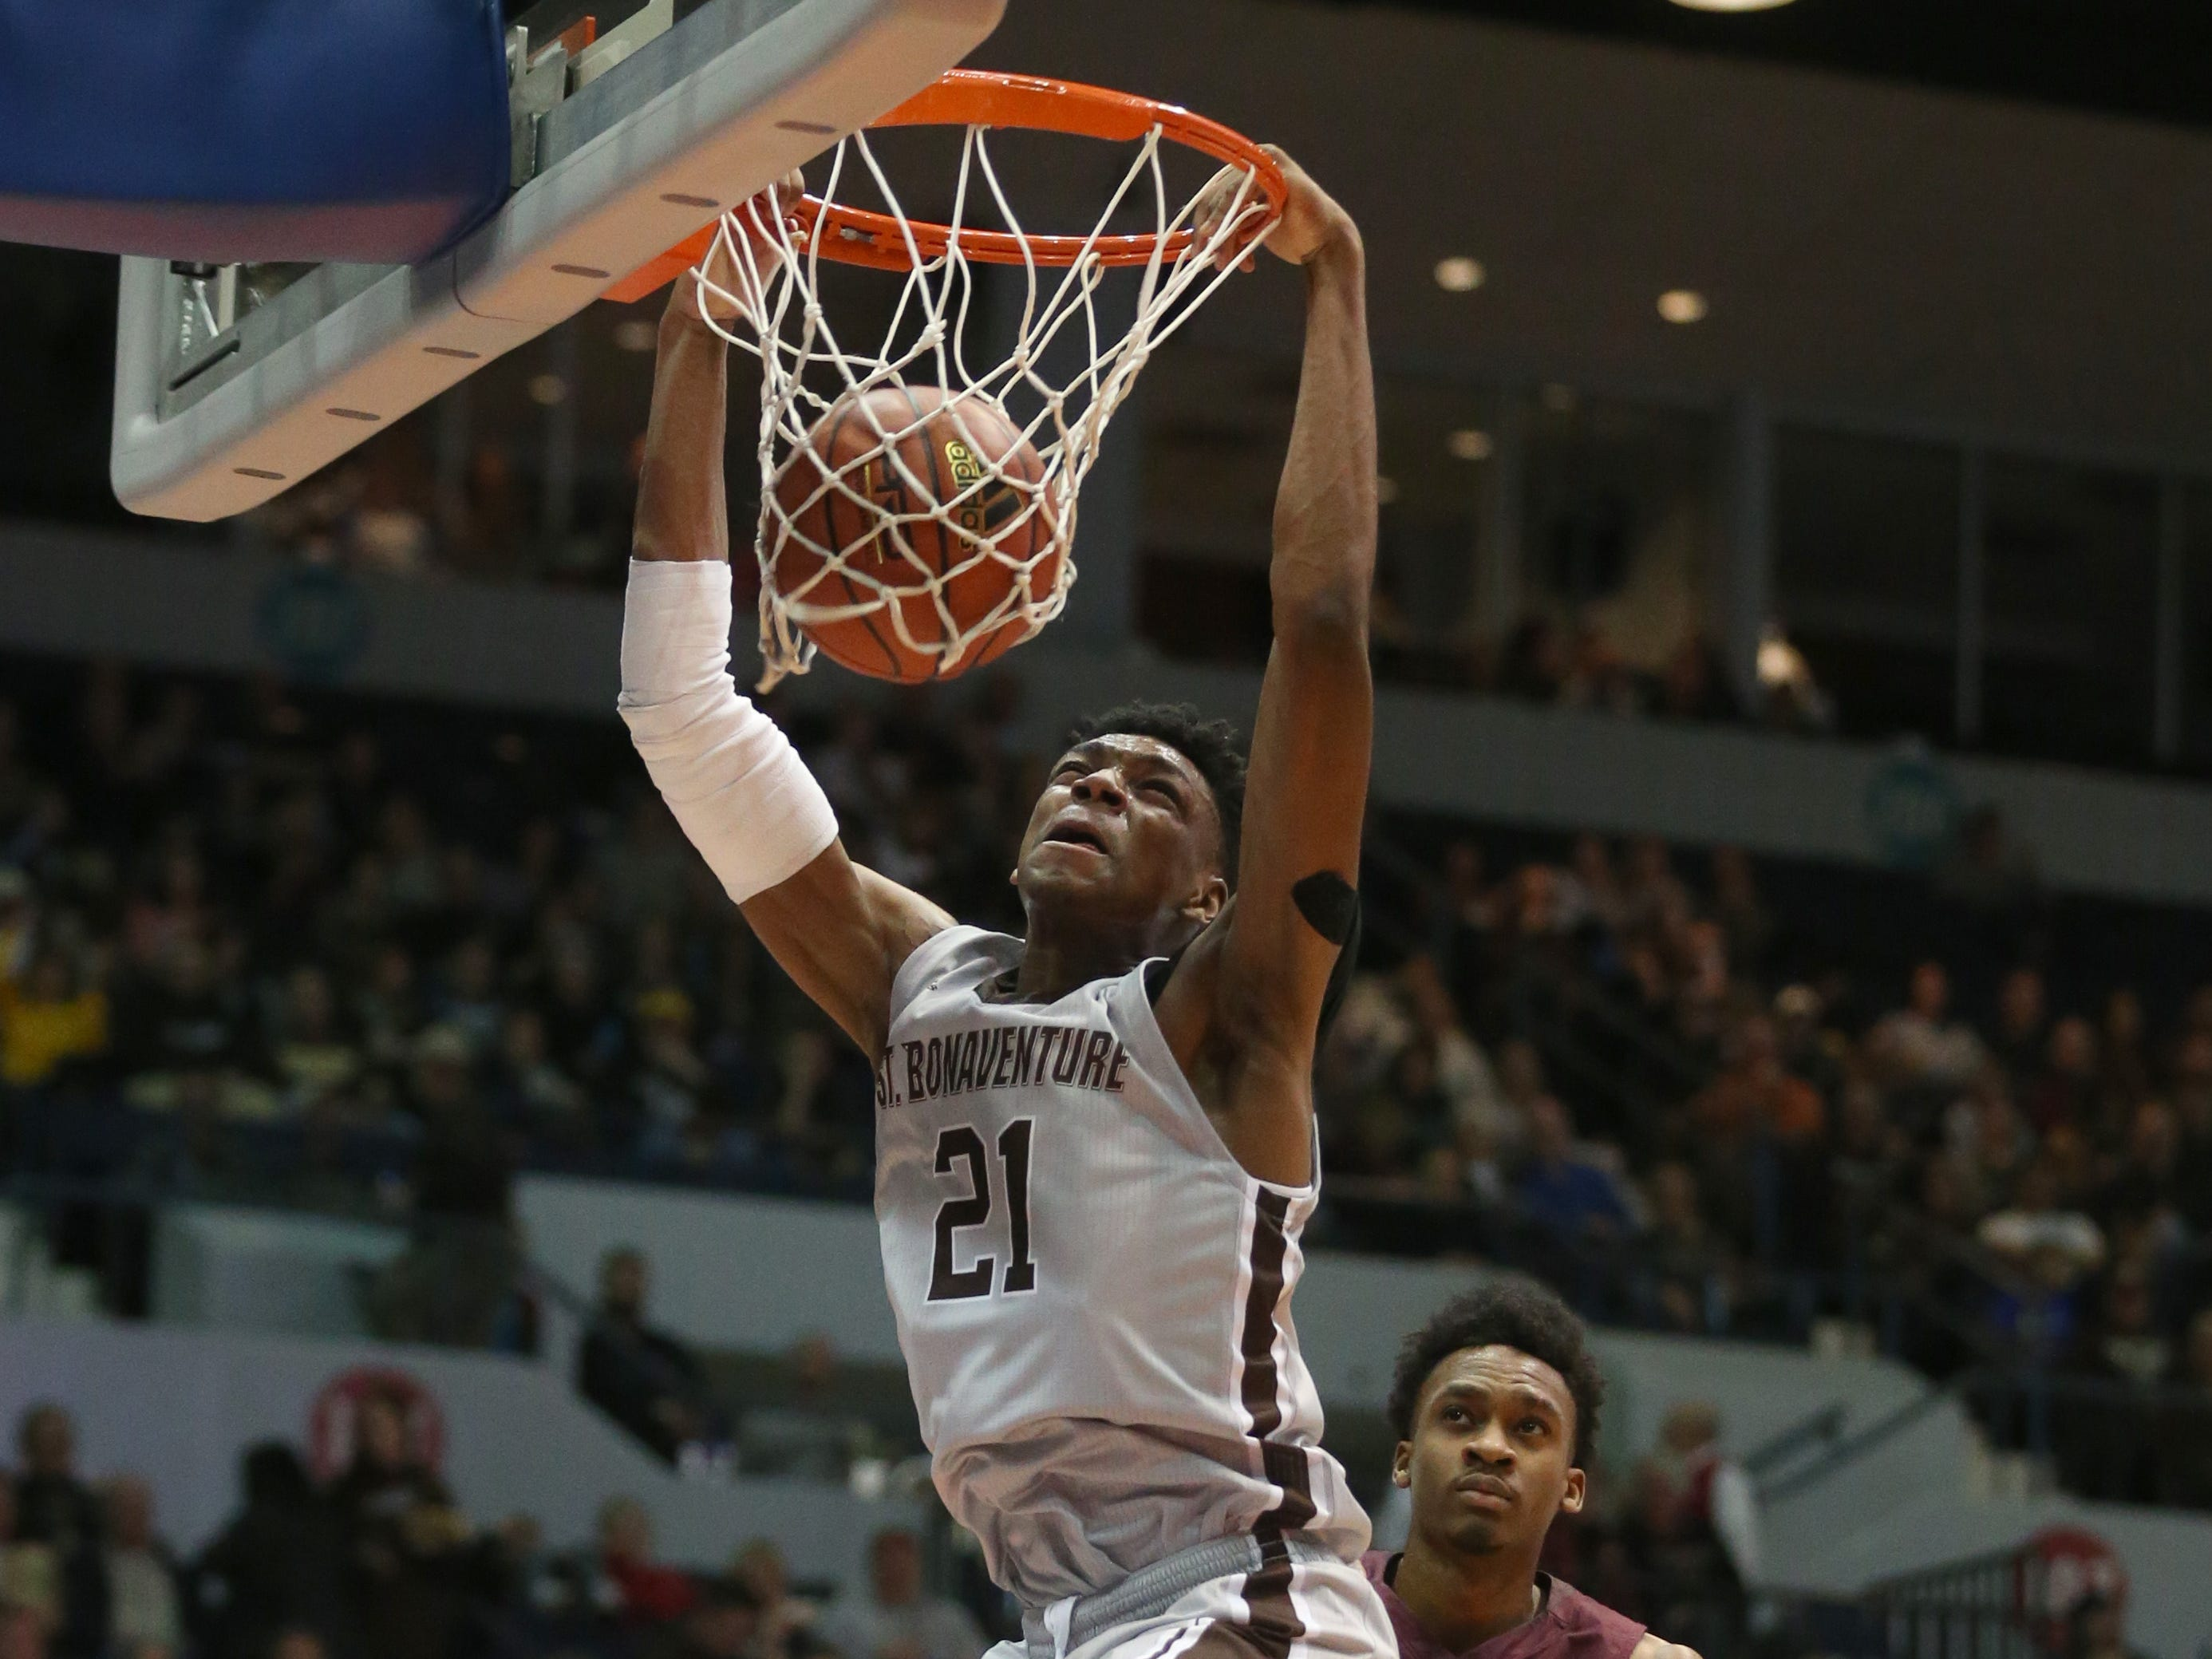 St. Bonaventure's Osun Osunniyi slams home two points over Fordham's Jalen Cobb in the first half.